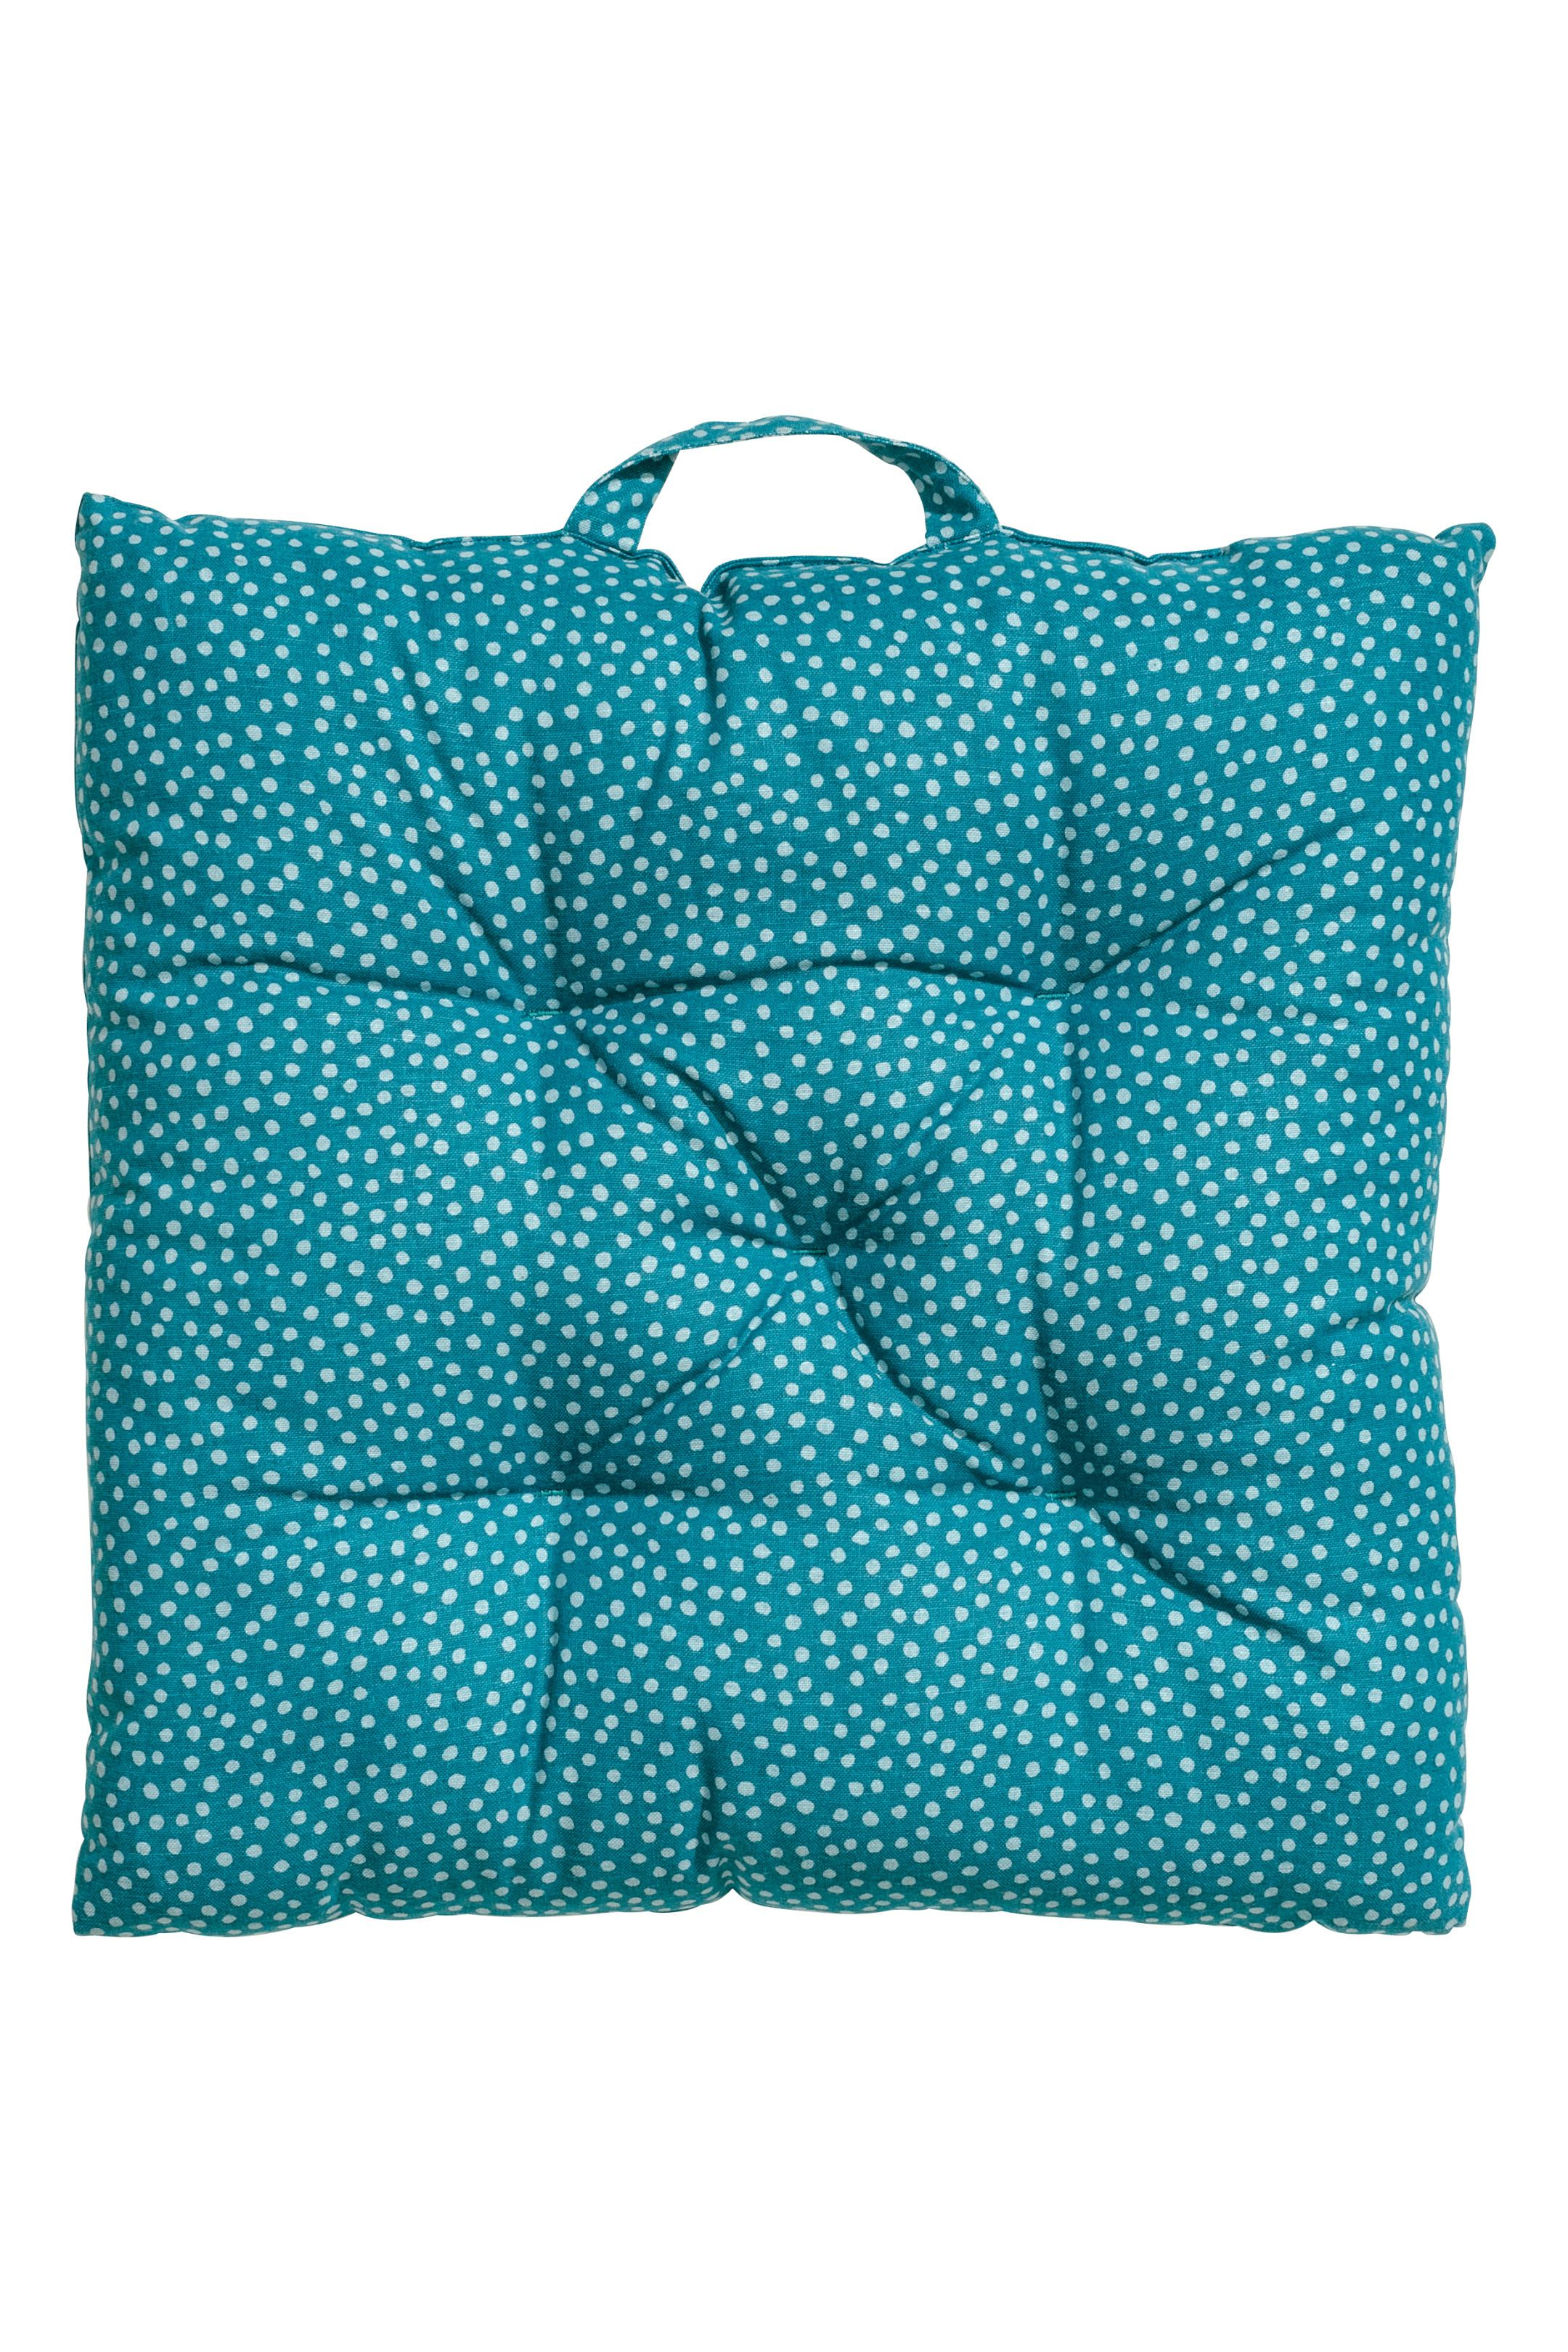 Patterned Seat Cushion Turquoise Home All H M Outdoor Bench Seat Cushions Bench Cushions Outdoor Outdoor Bench Seating